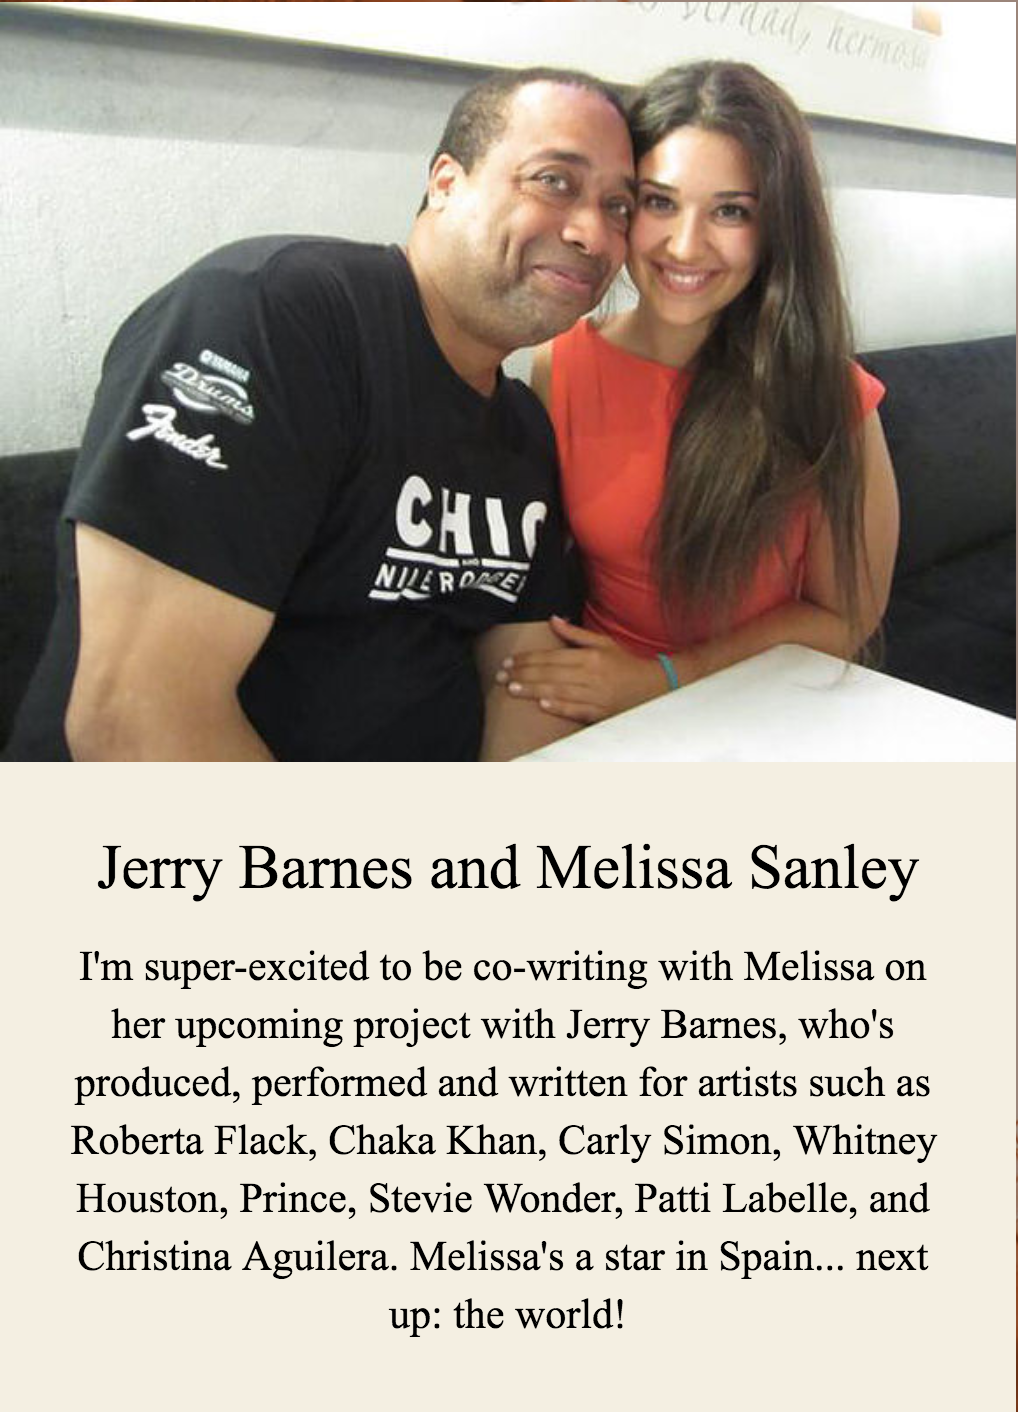 Jerry Barnes and Melissa Sanley